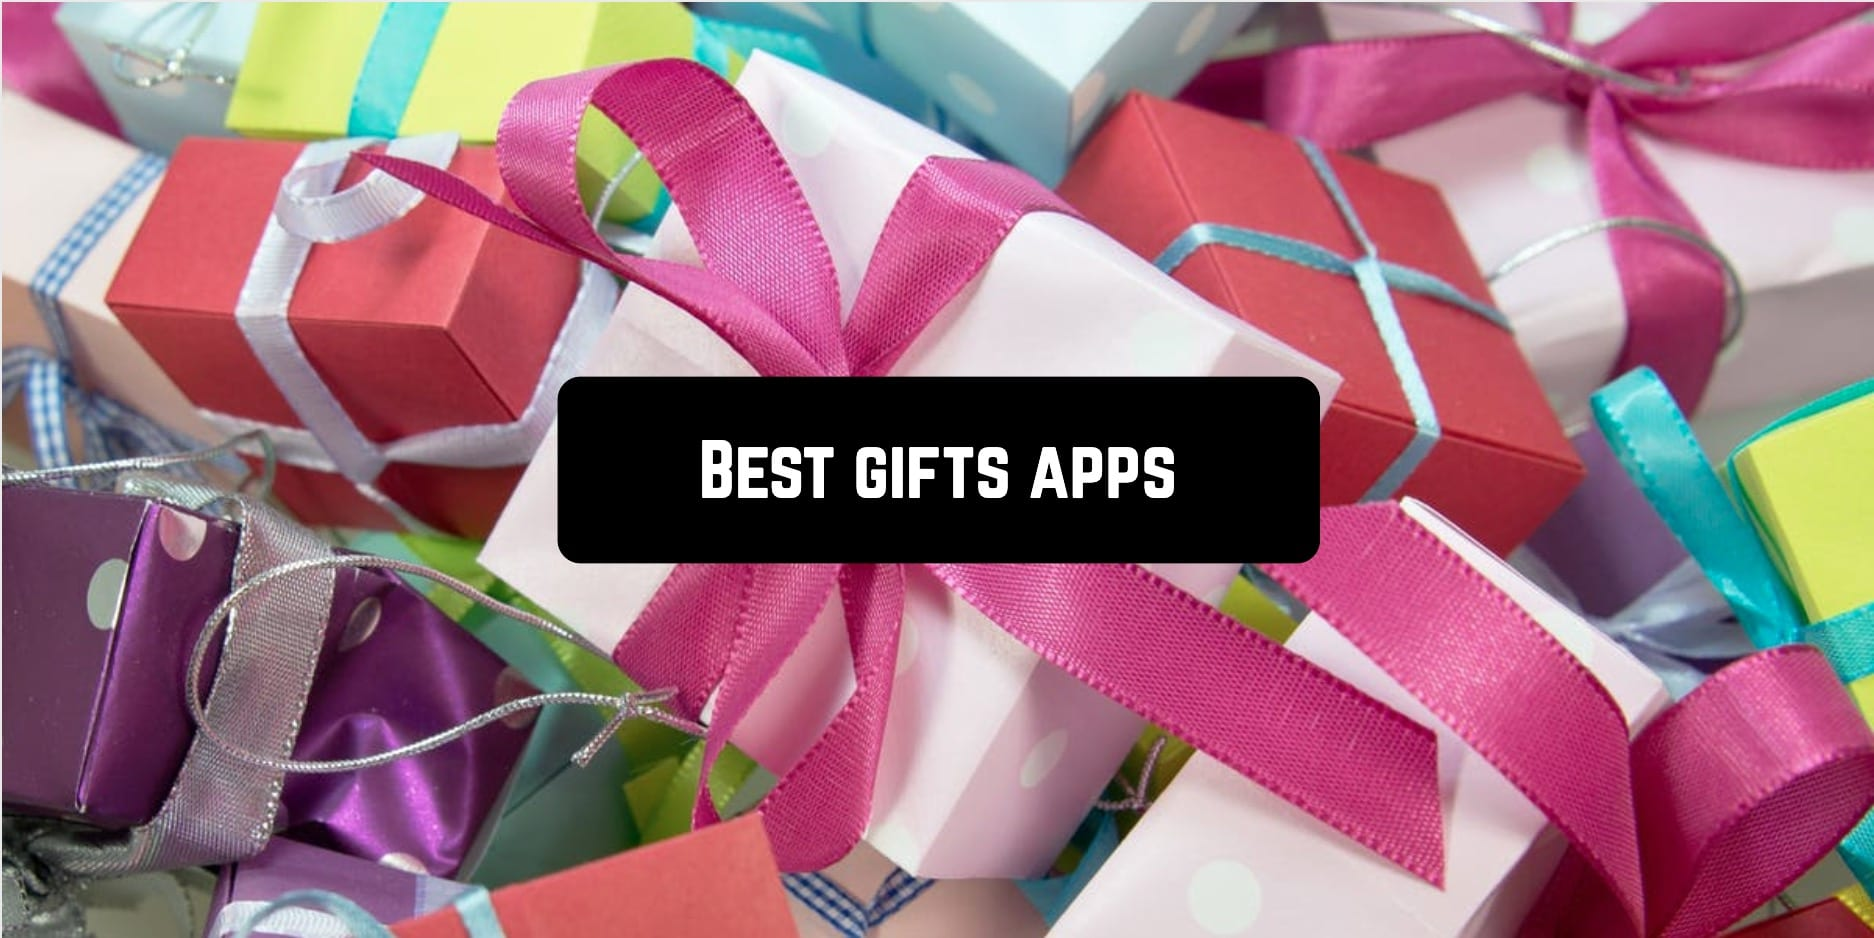 Best gifts apps